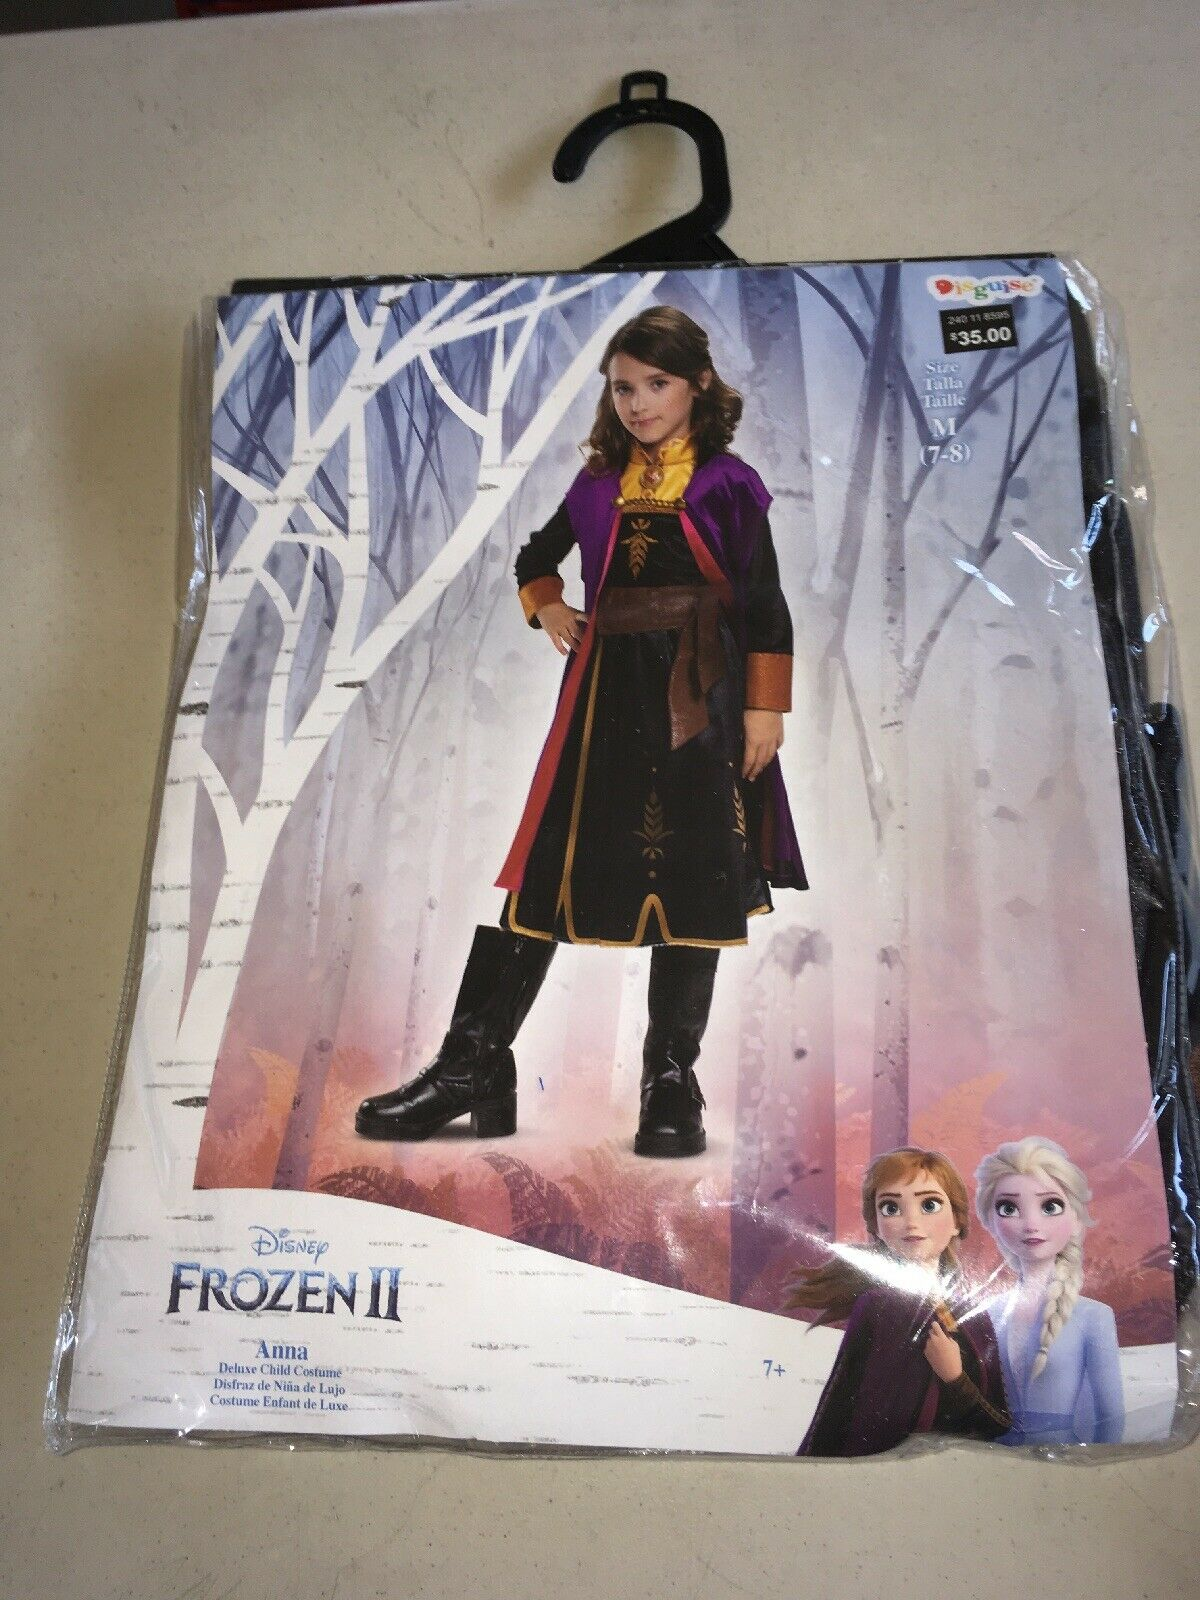 H3 Disguise Girl's Disney Frozen 2 Anna Deluxe Costume Dress Up Sz. M 7-8 NWT